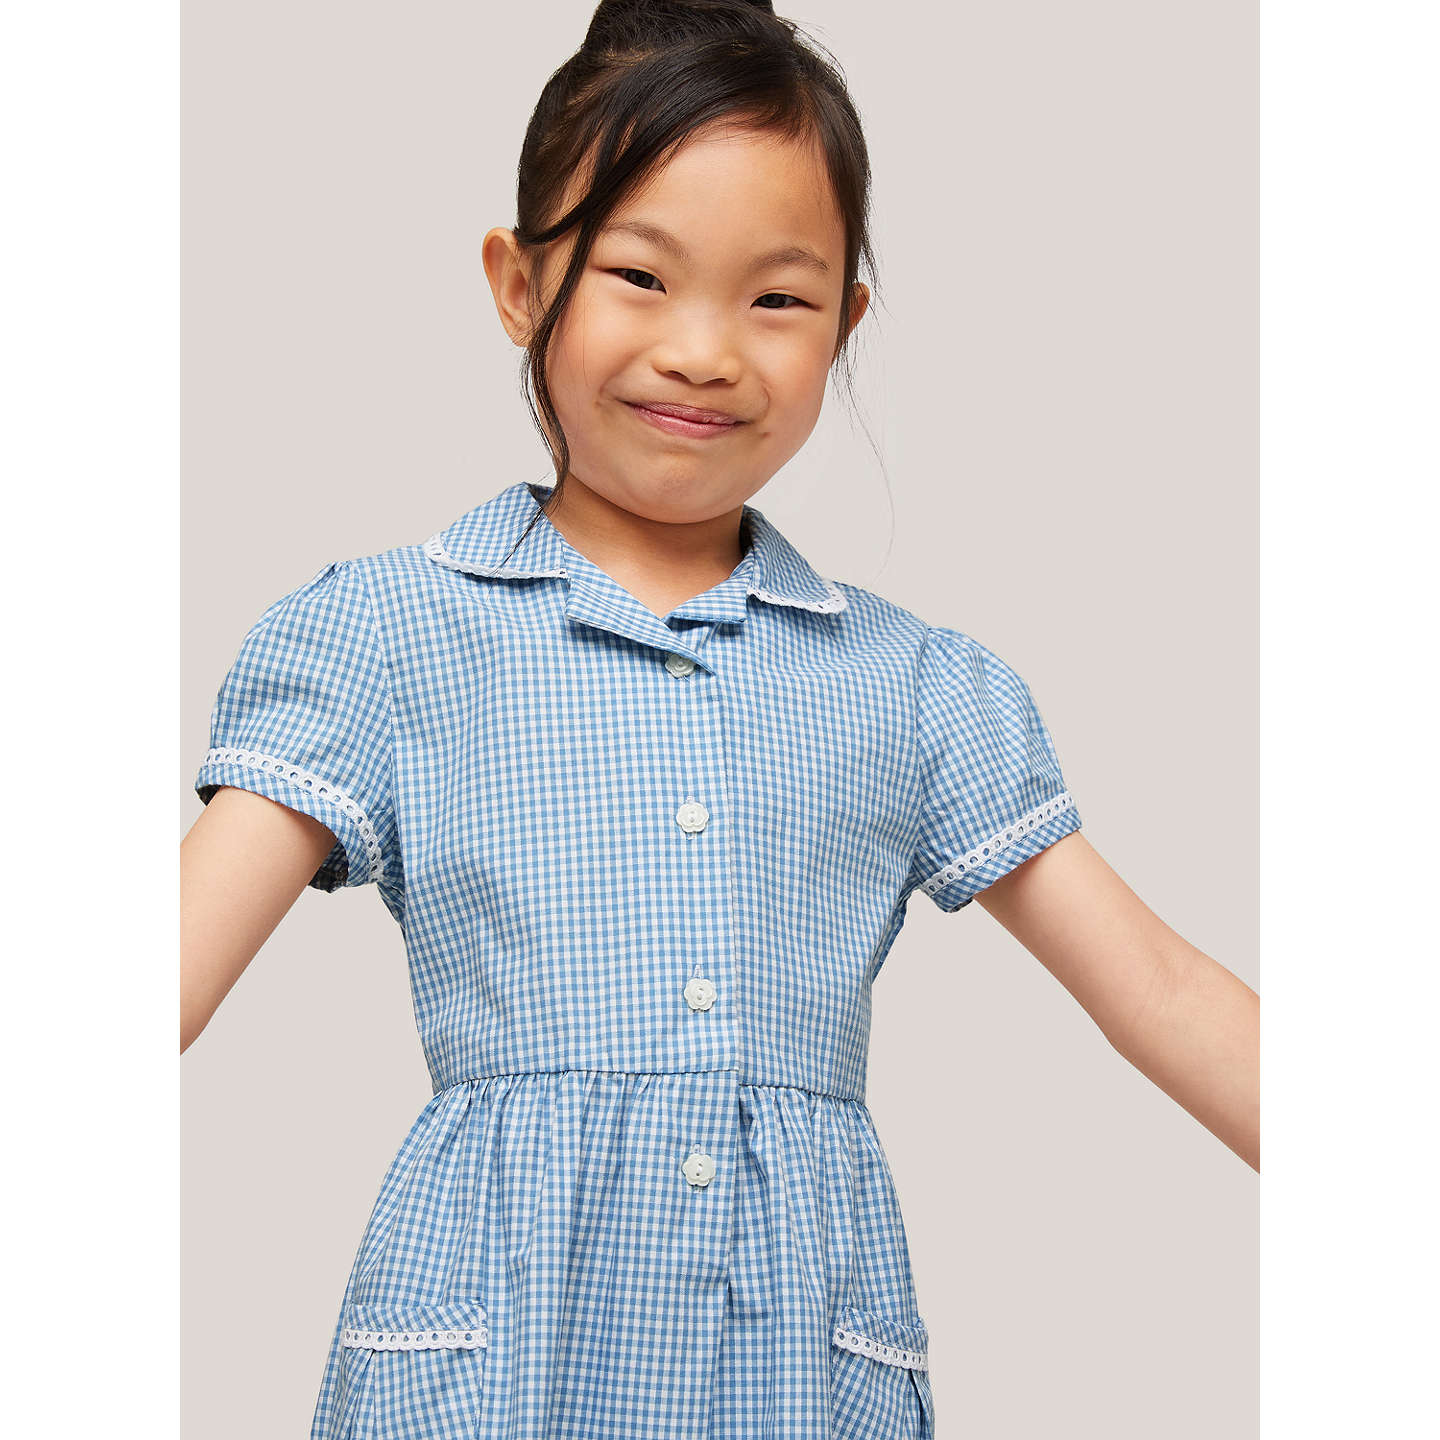 BuyJohn Lewis Gingham Cotton School Summer Dress, Blue, 4 years Online at johnlewis.com